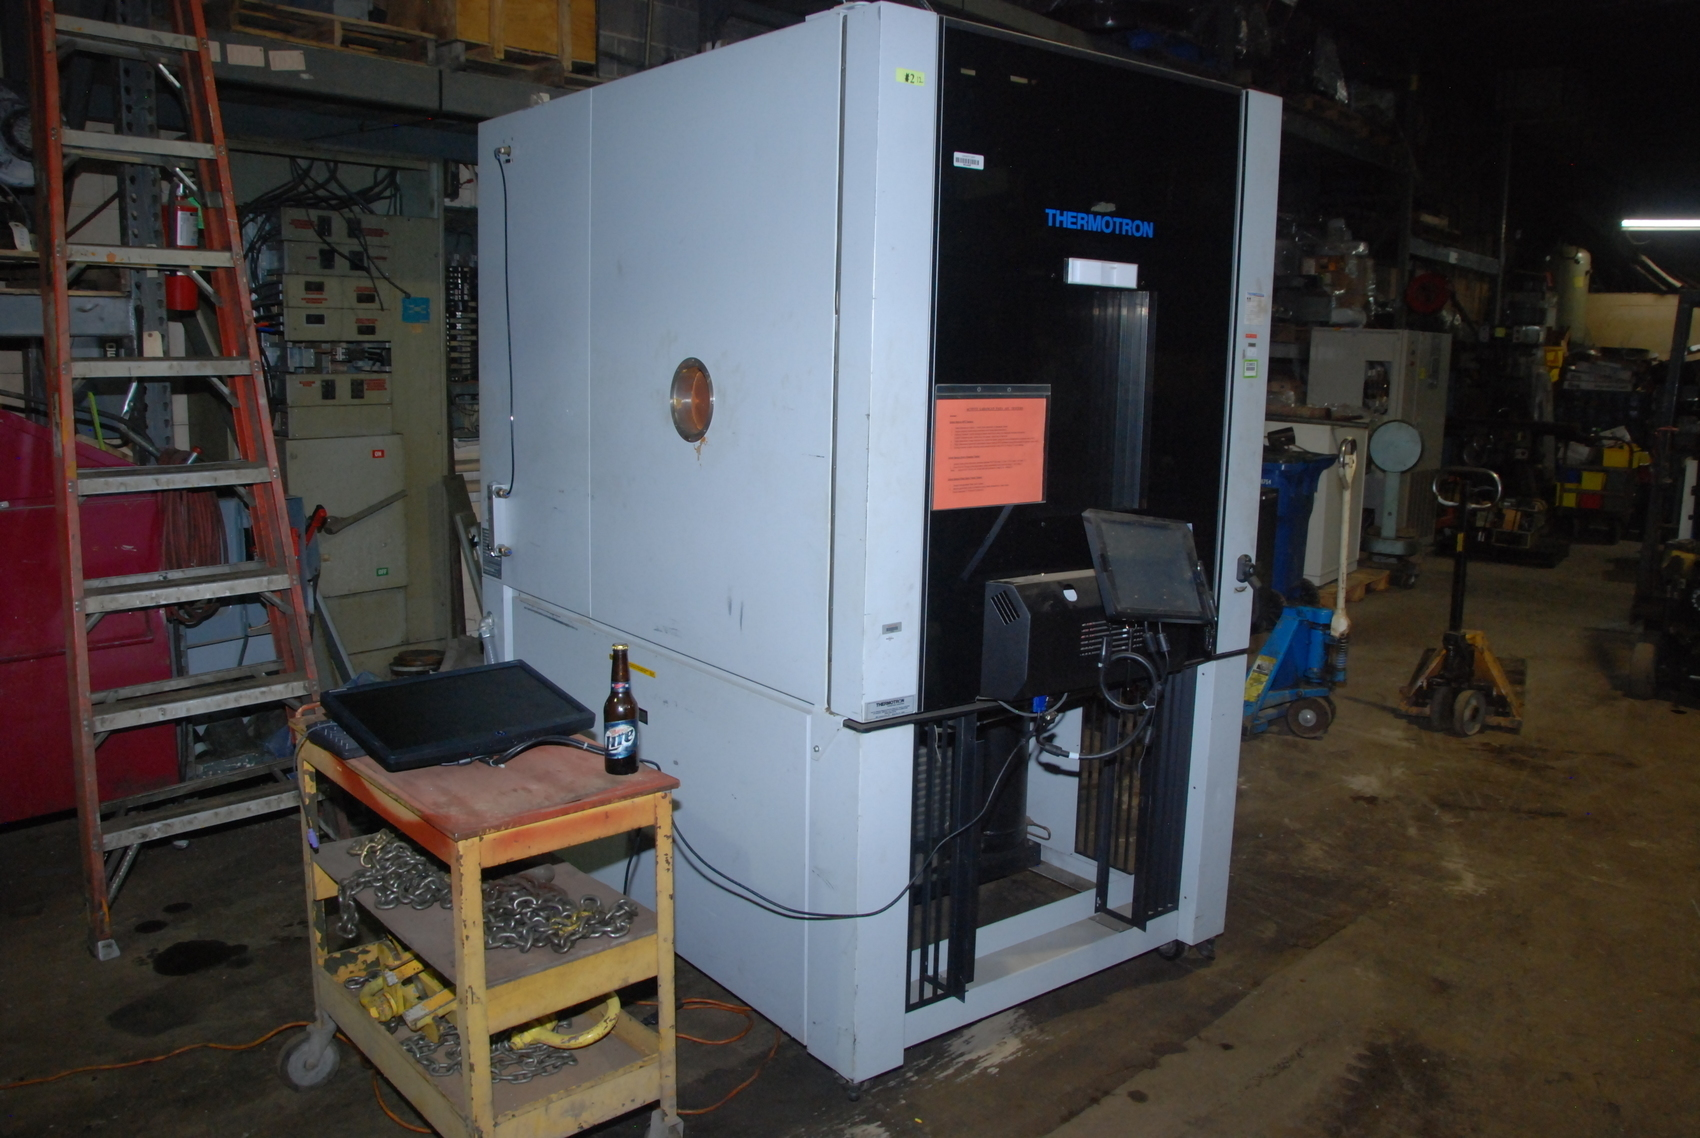 FOR PARTS THERMOTRON SE-1000-5-5 Environmental Chamber